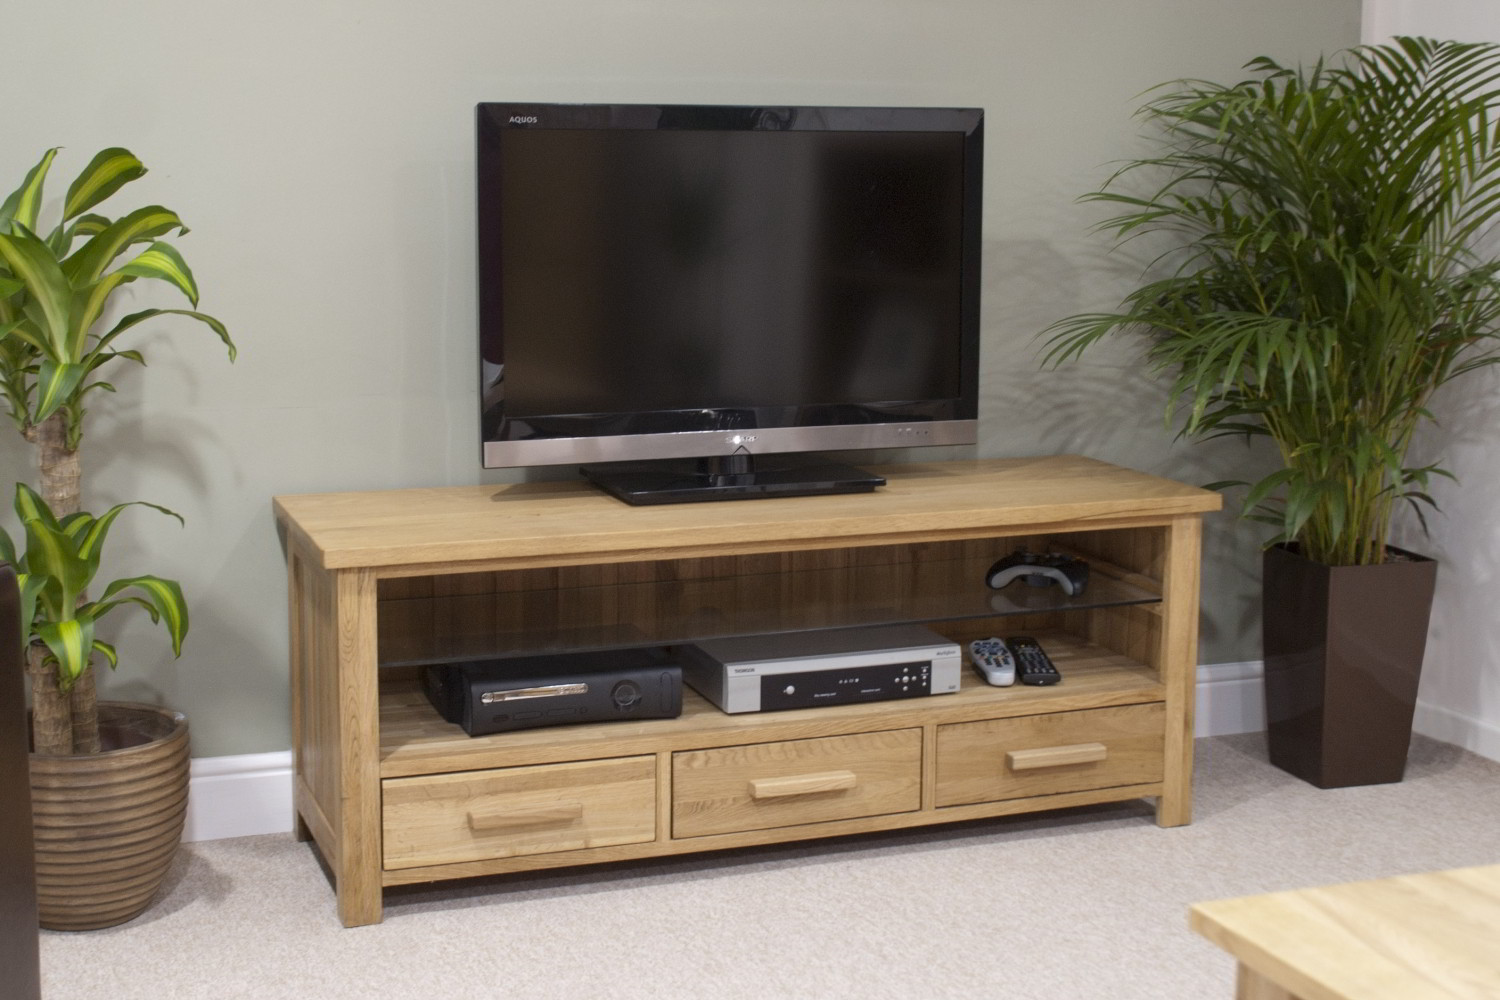 Eton solid oak living room furniture widescreen tv cabinet for Solid oak furniture